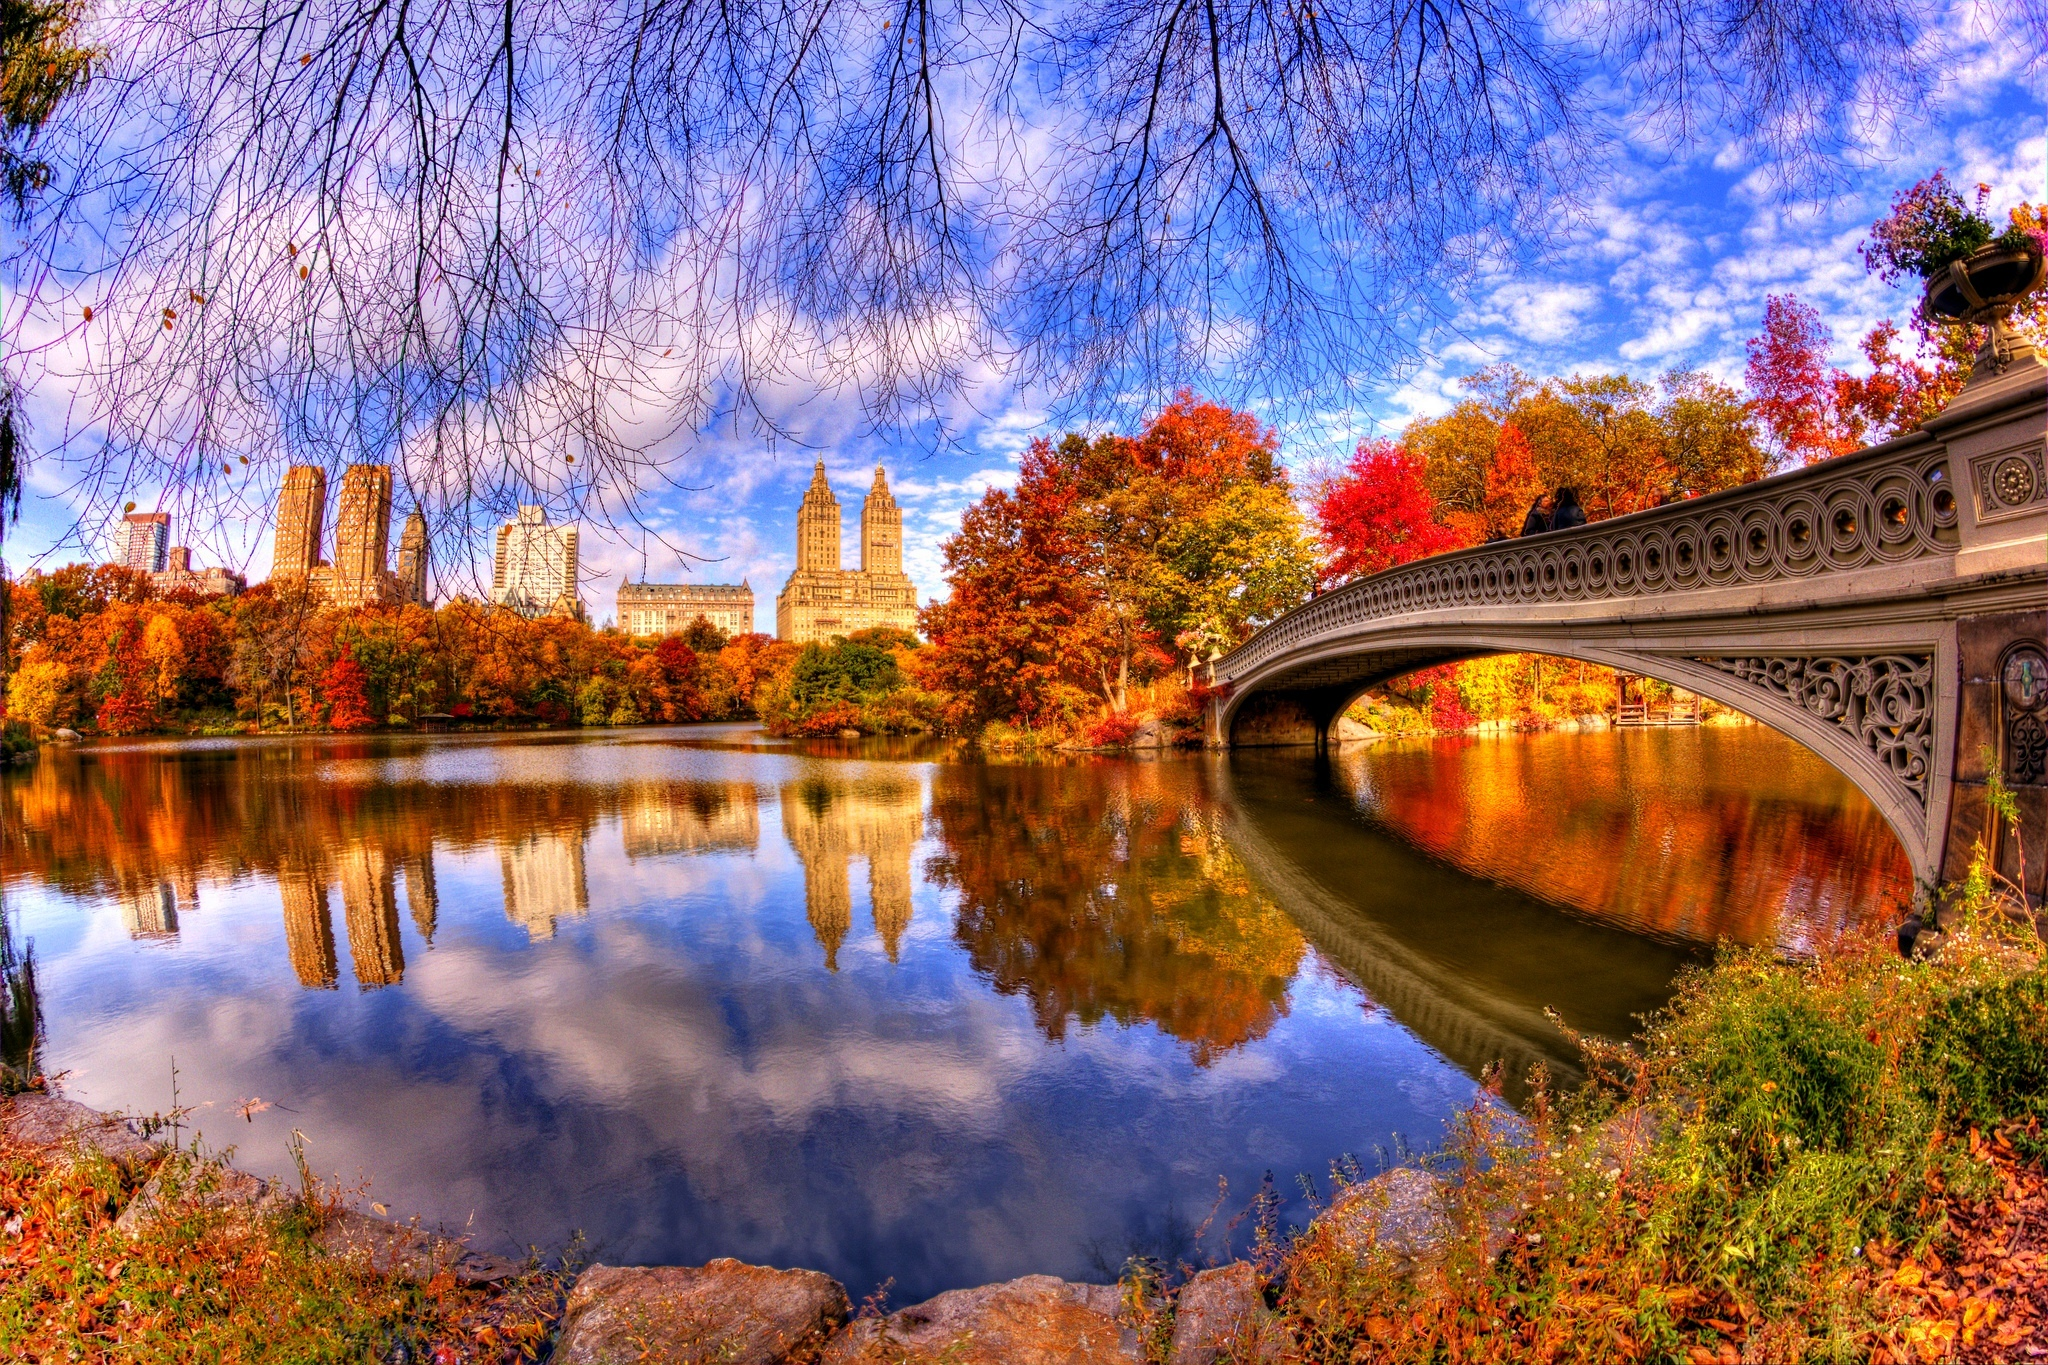 Free Desktop Wallpaper Niagara Falls Autumn In Central Park There S Just Nothing Better